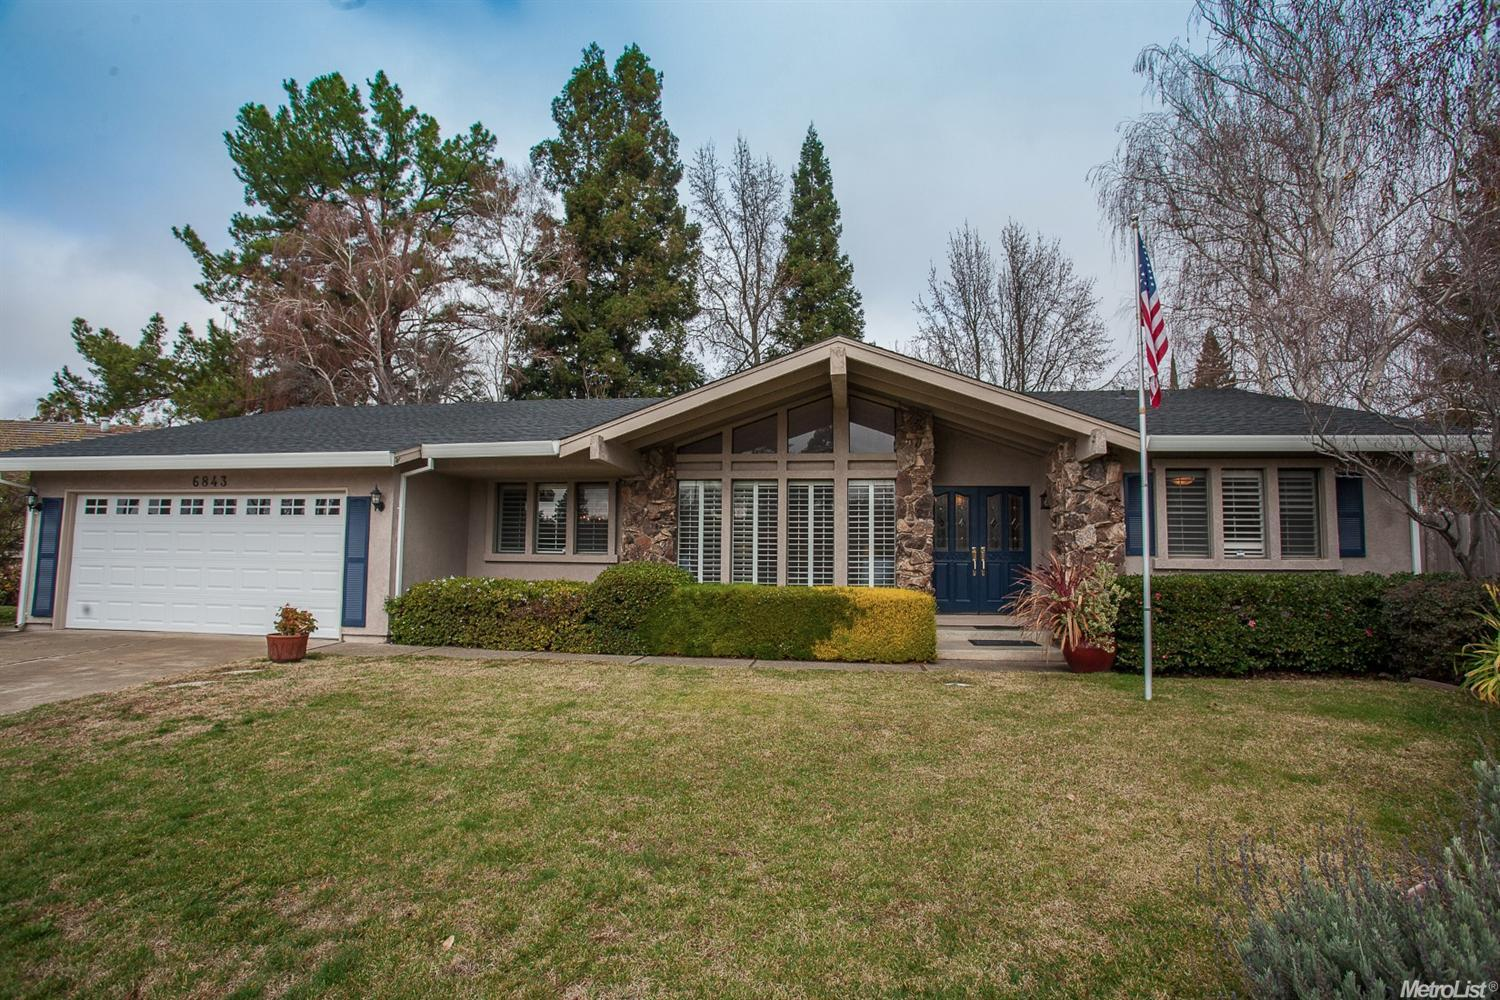 6843 Waterview Way, Sacramento, CA